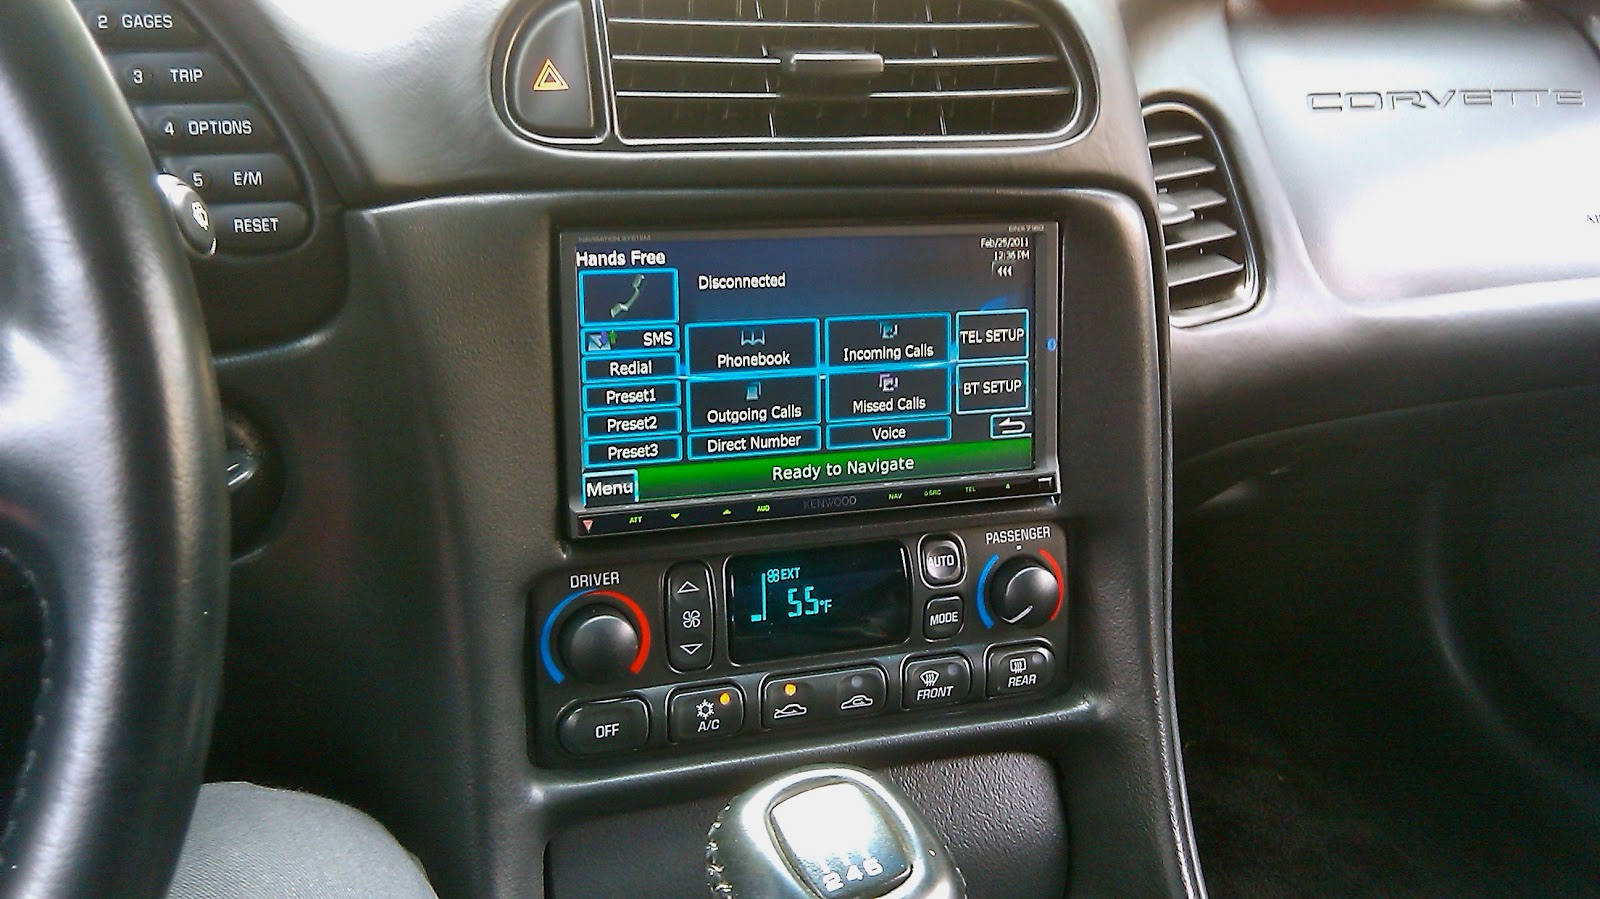 2001 chevy malibu car stereo wiring diagram mg tf 1500 2007 tahoe best library